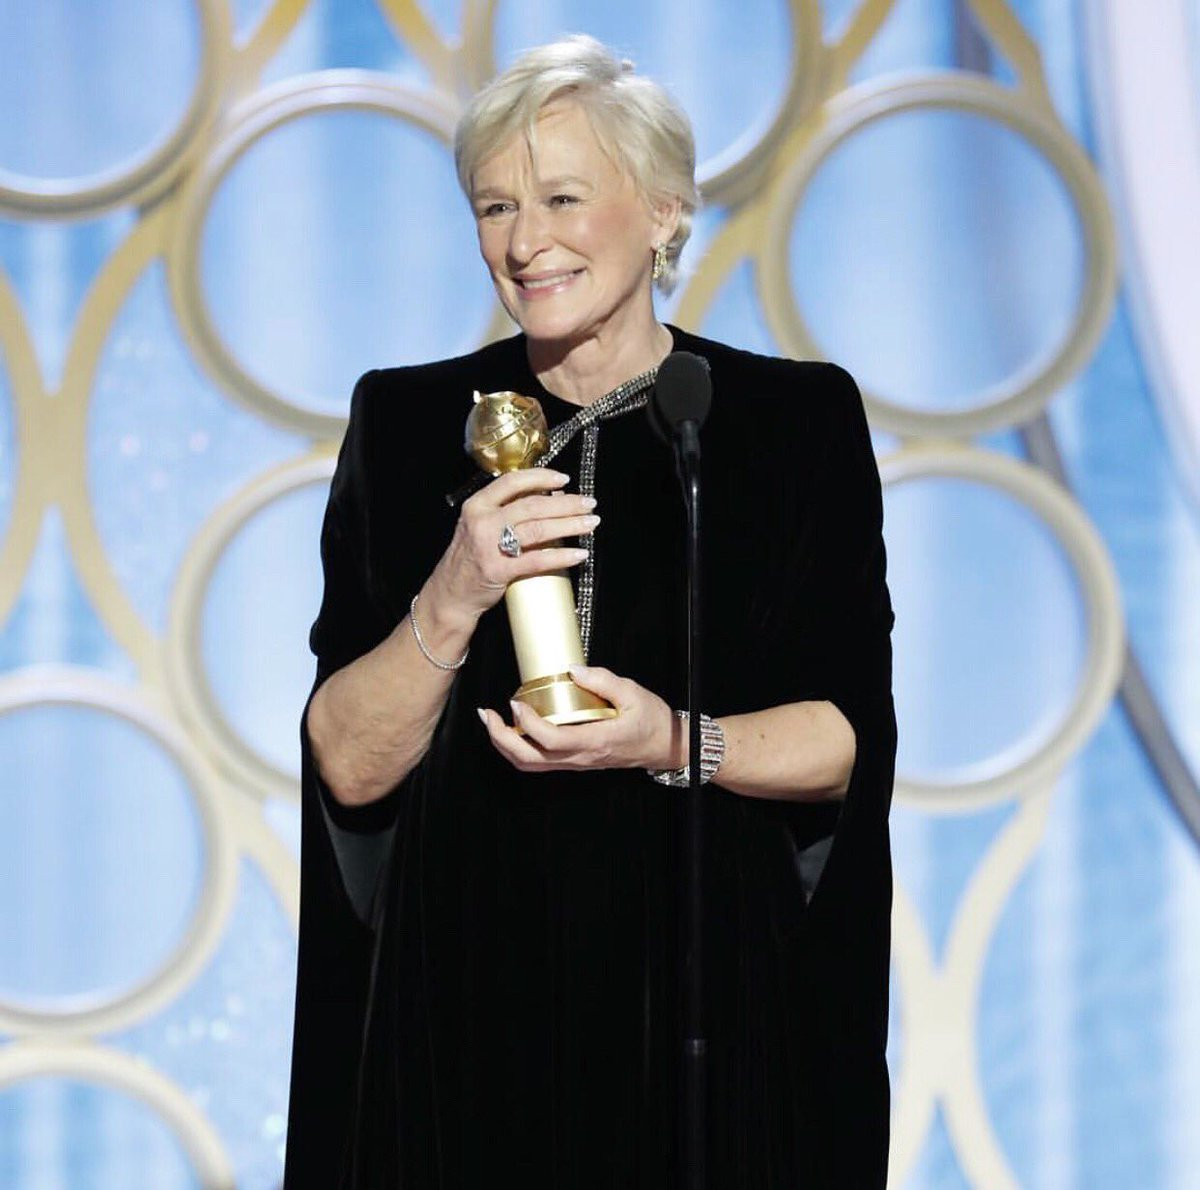 """Congratulations to Glenn Close on winning the Golden Globe for Best Actress in a Drama Motion Picture with """"The Wife"""" ✍🏼🌟"""